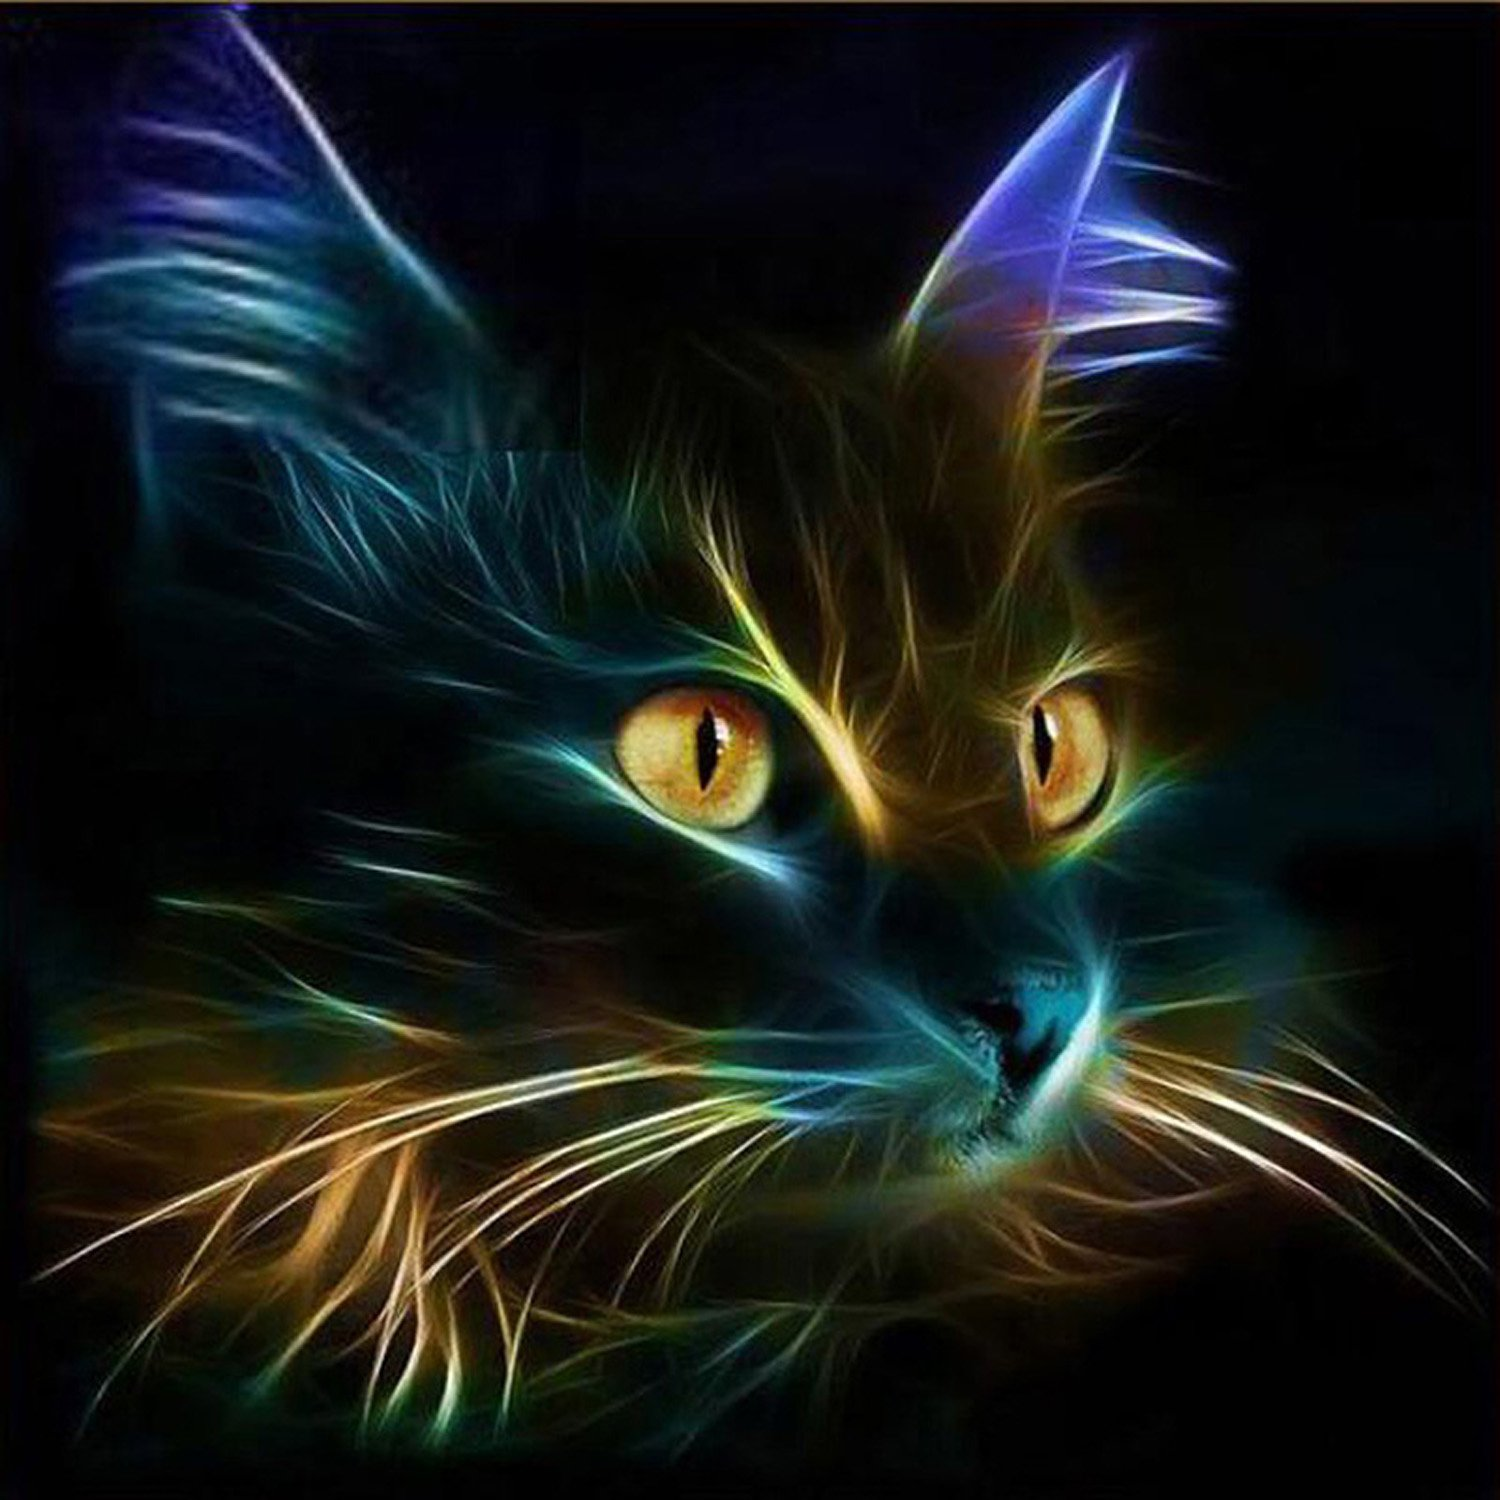 ZHENC 5D Dream Abstract Black Cat Face DIY Square Diamond Painting Animals Embroidery Full Drill Craft Decor Cross Stitch Kits by ZHENC